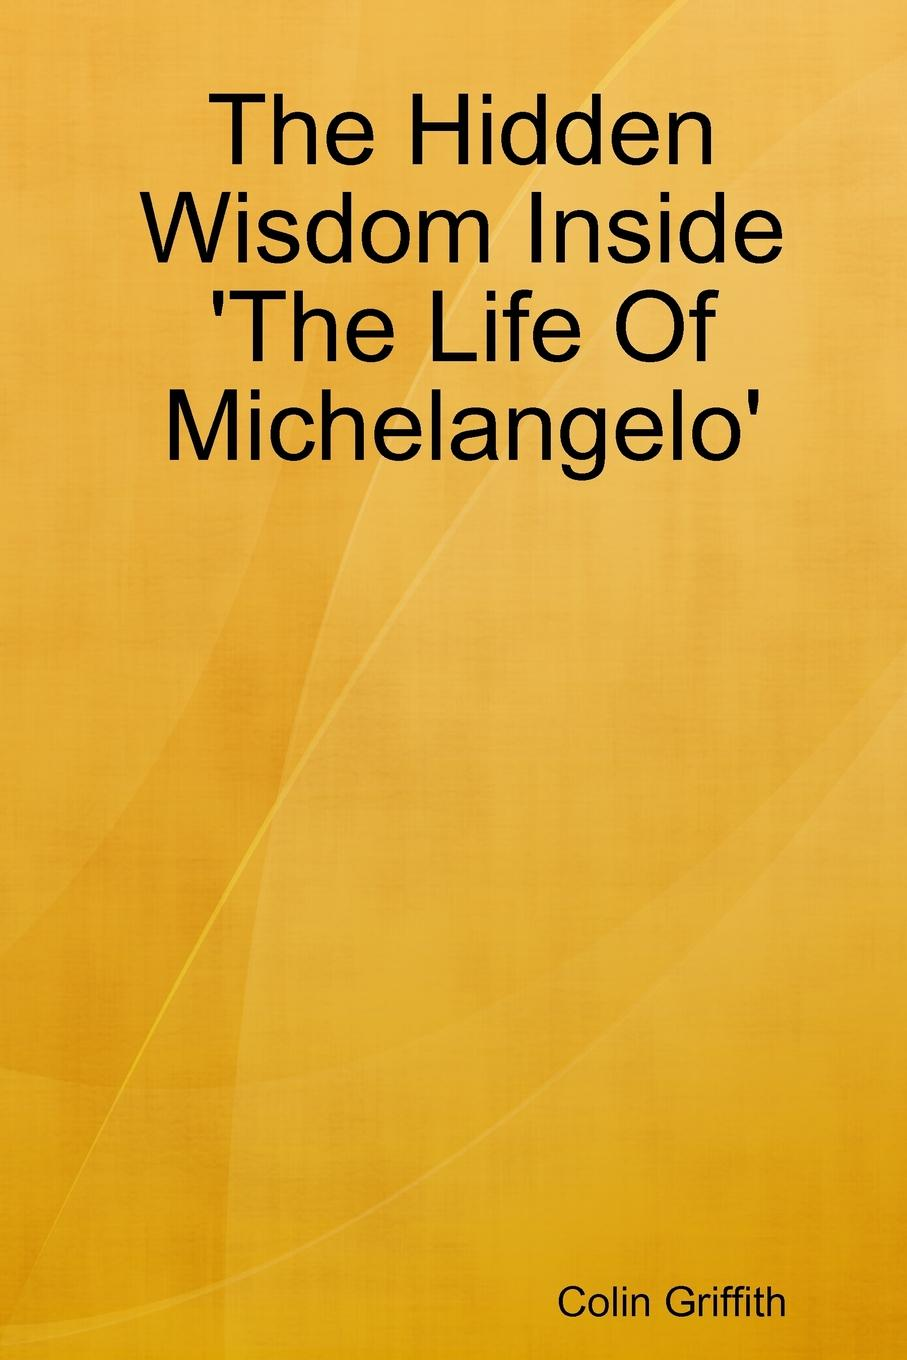 Colin Griffith The Hidden Wisdom Inside .The Life Of Michelangelo.